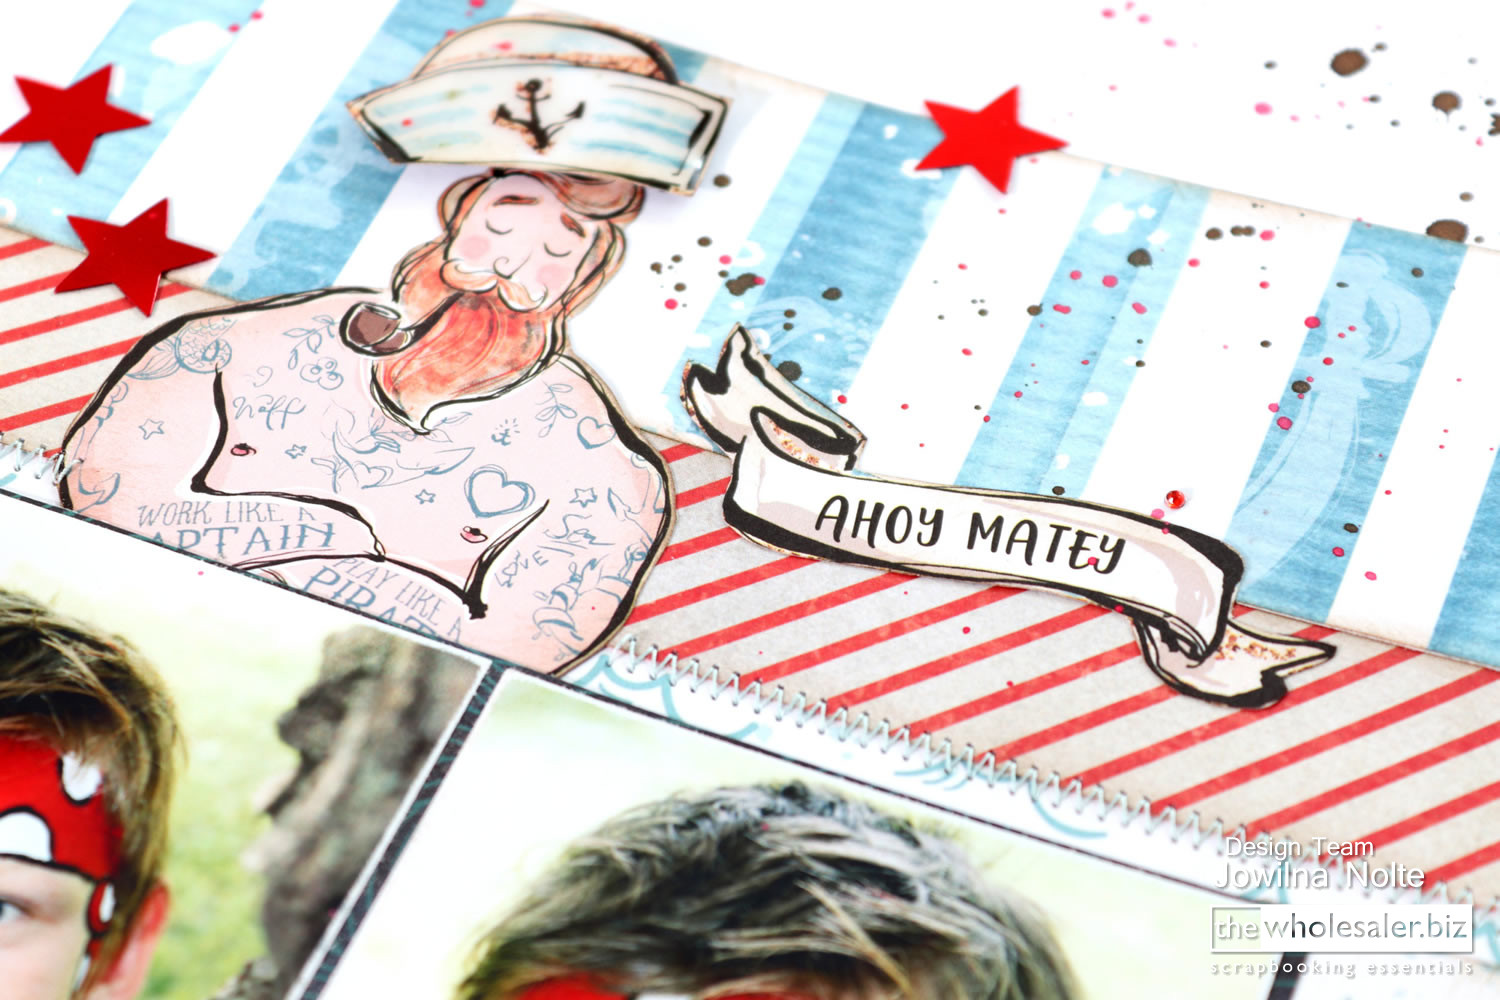 Lady Pattern Paper - Ahoy Boy Layout - Merman